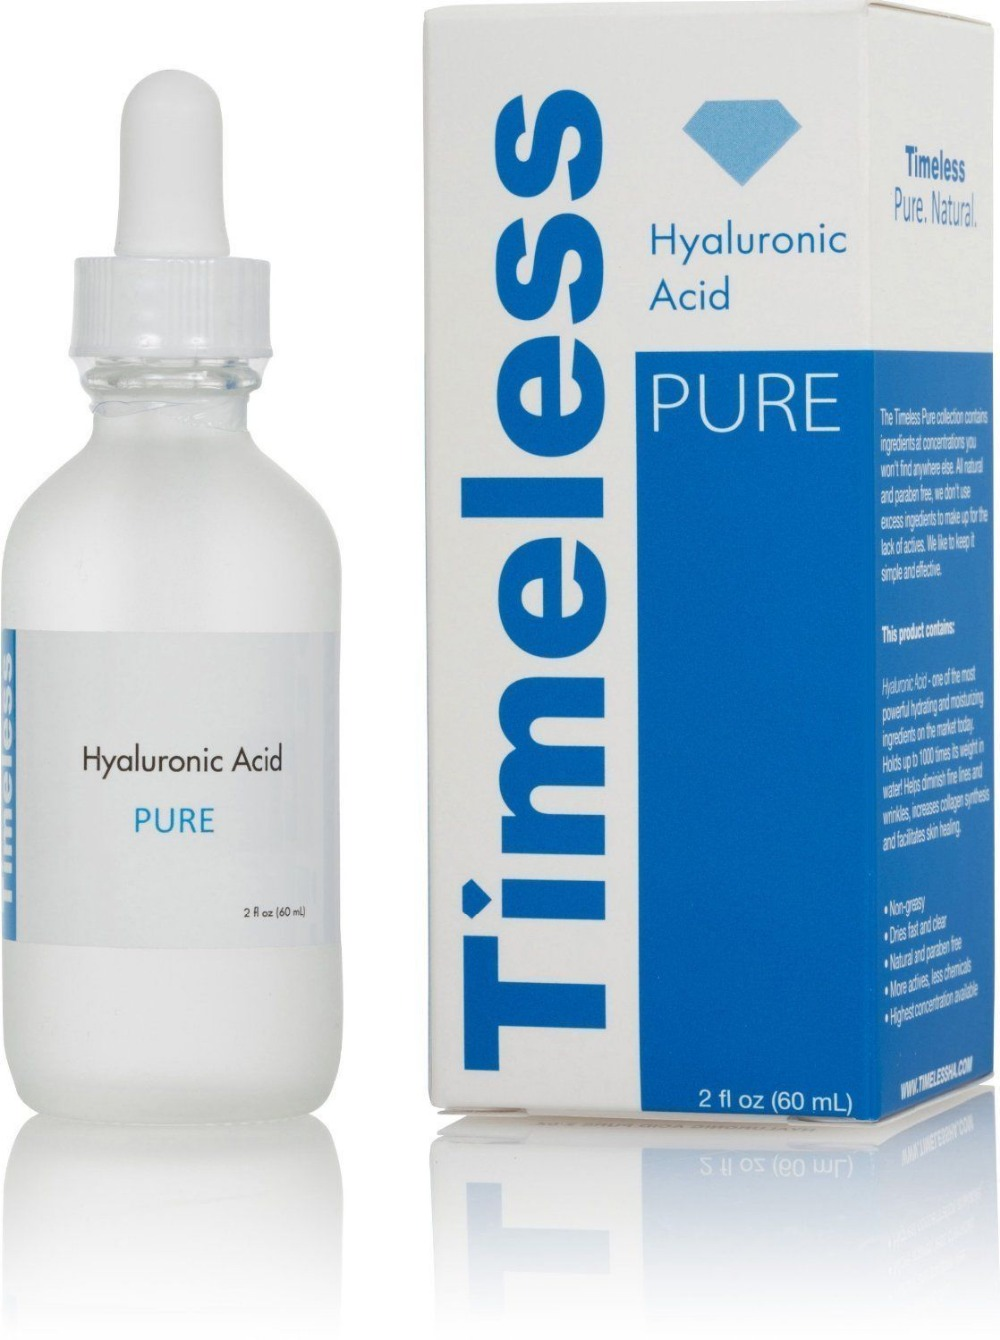 The Best 100% Hyaluronic Acid Pure! Nature! Age Less With Timeless /Sealed/2oz